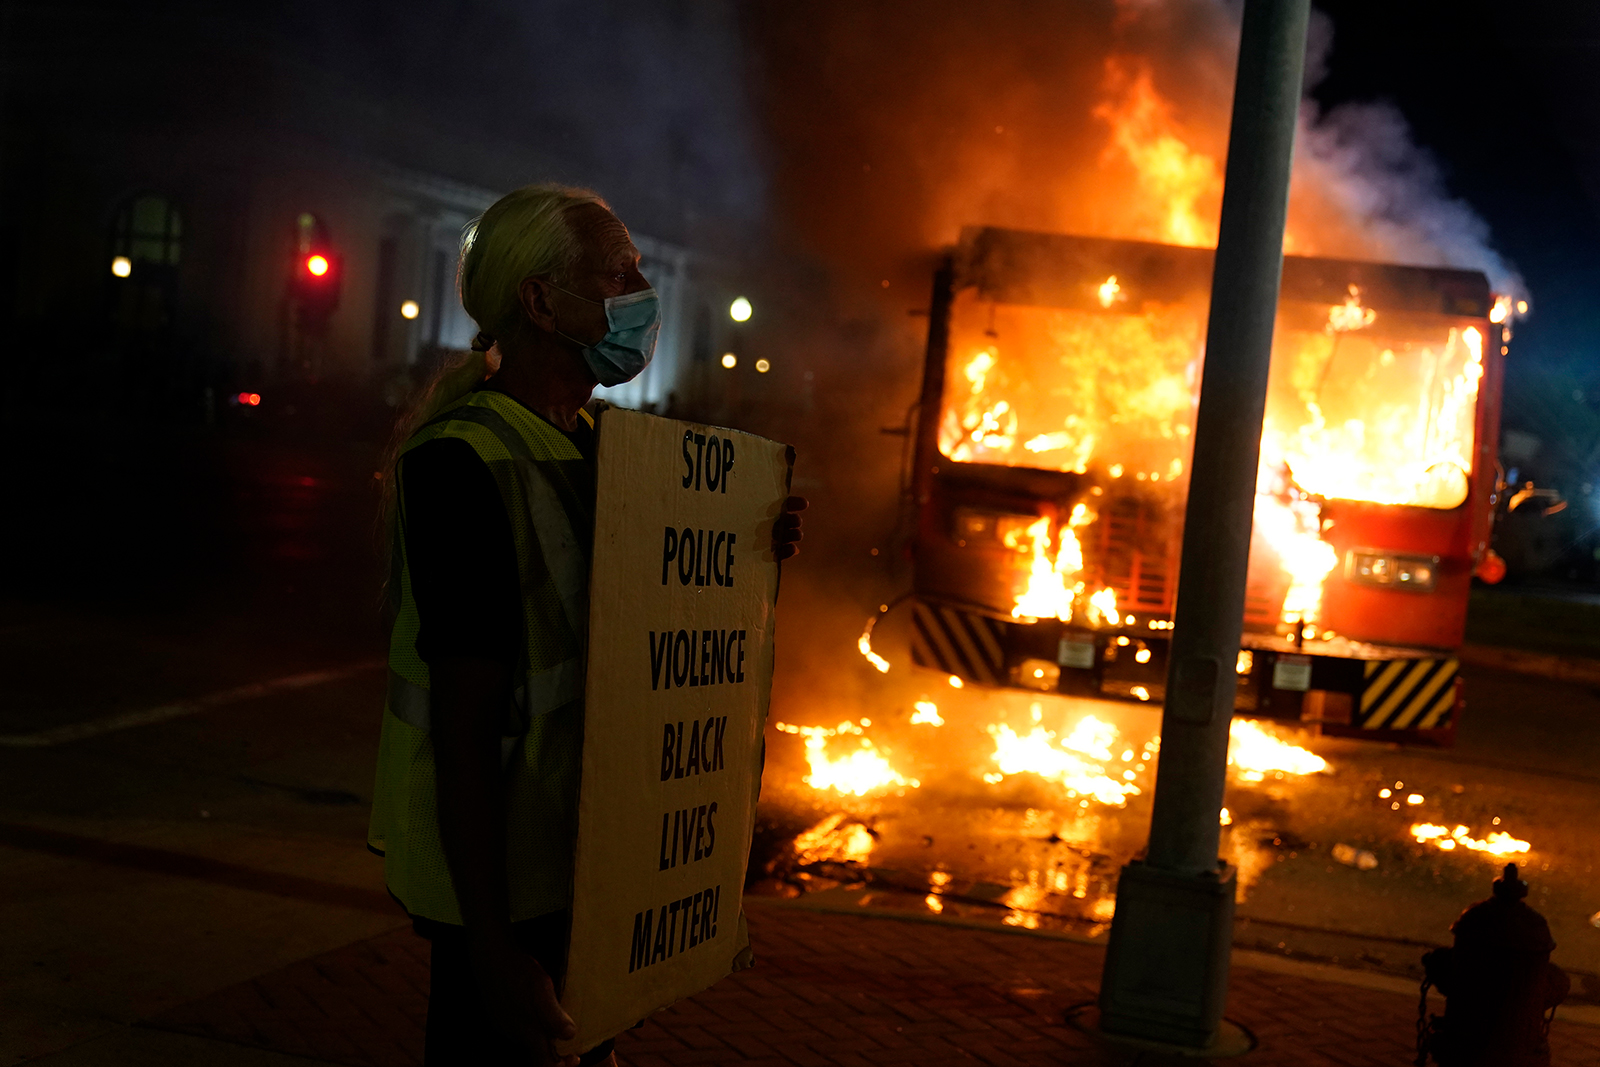 A protester stands near a burning garbage truck outside the Kenosha County Courthouse, in Kenosha, Wisconsin late, on August 24.